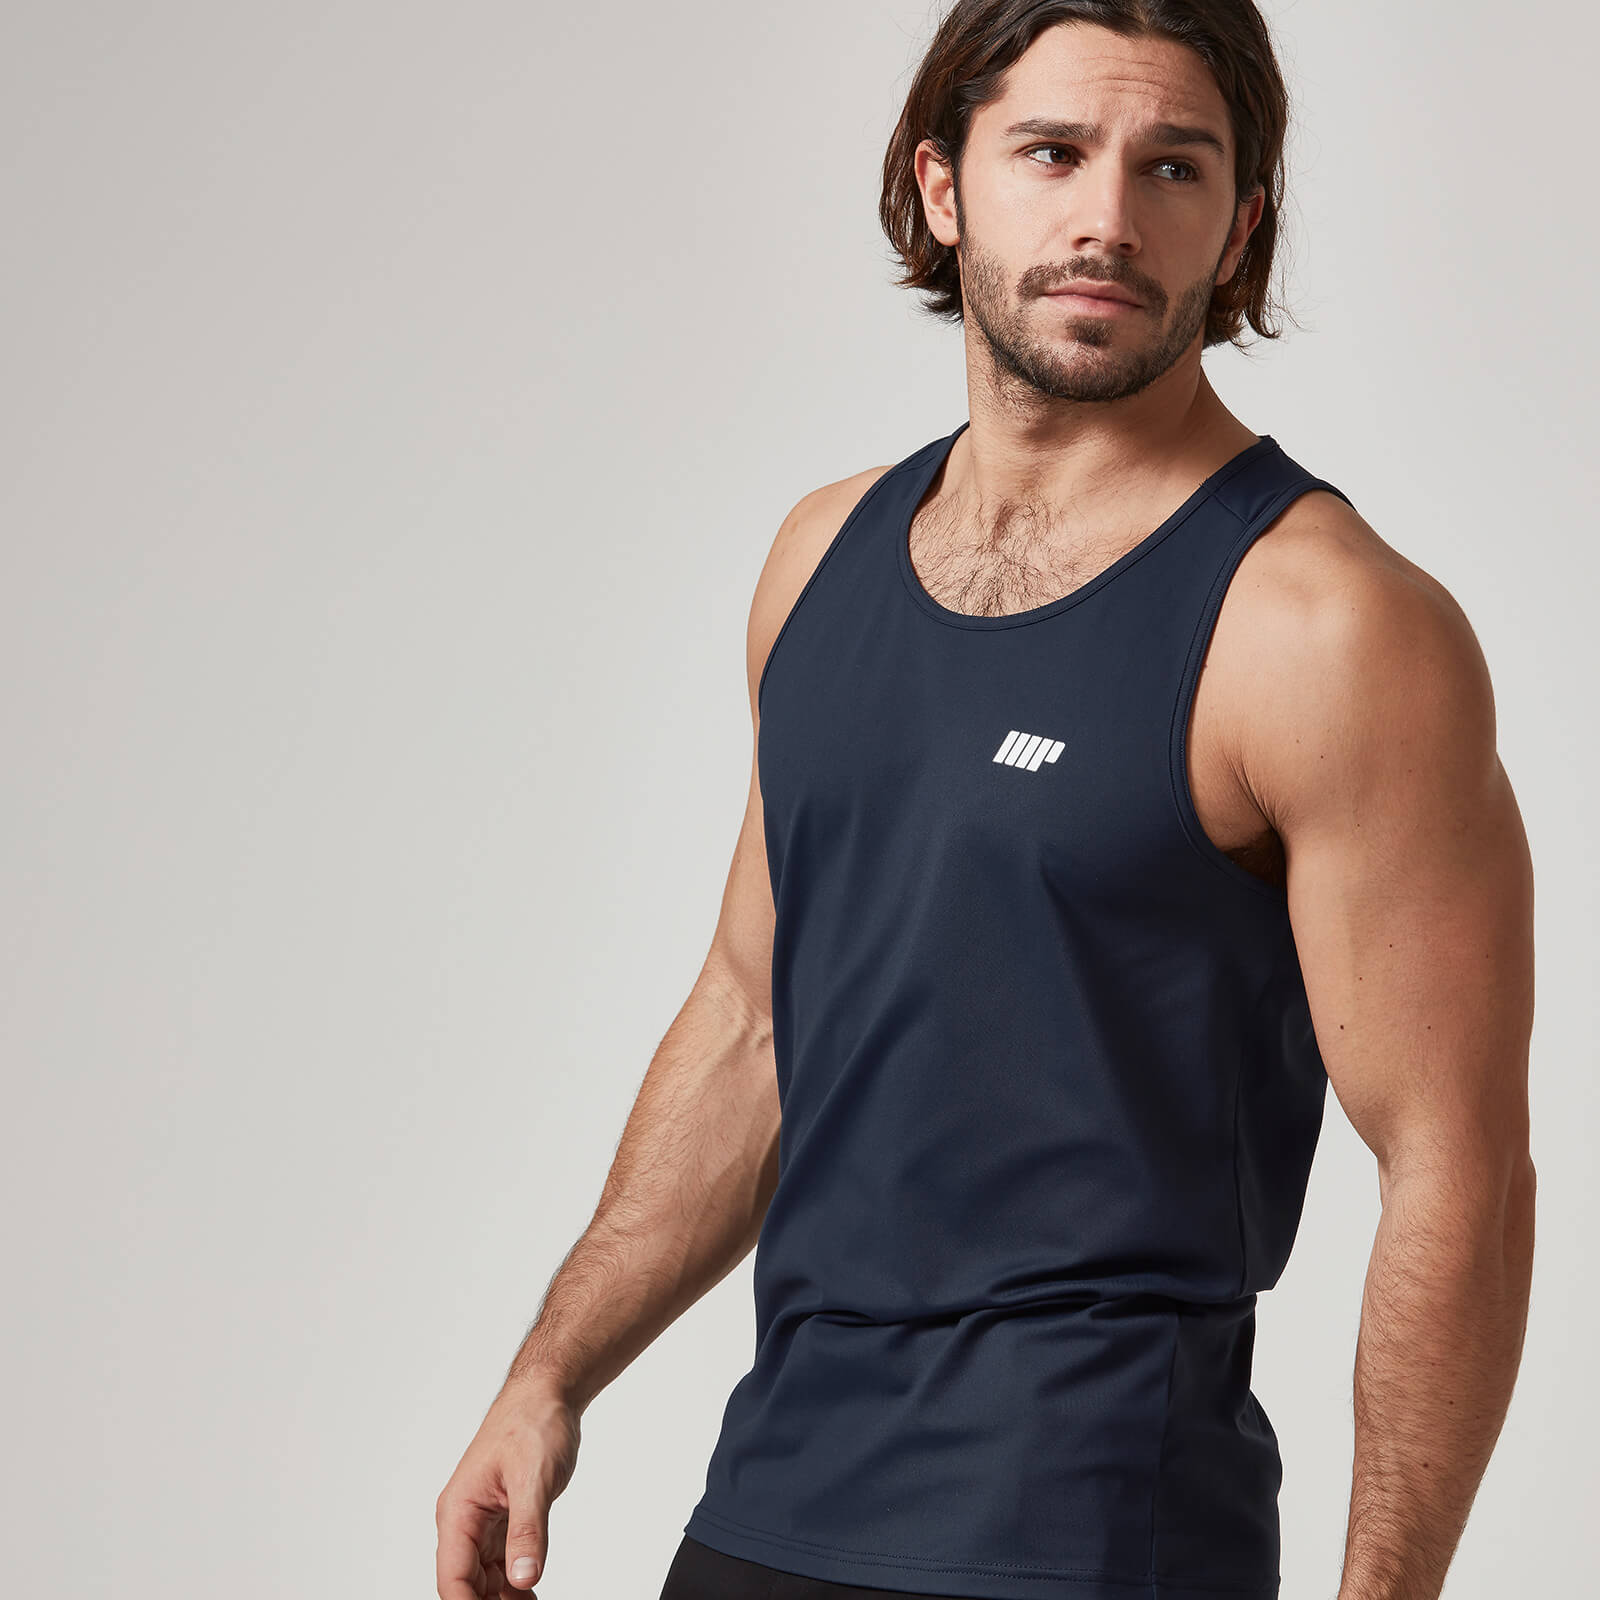 Myprotein Dry Tech Tank Top - Navy, XXL